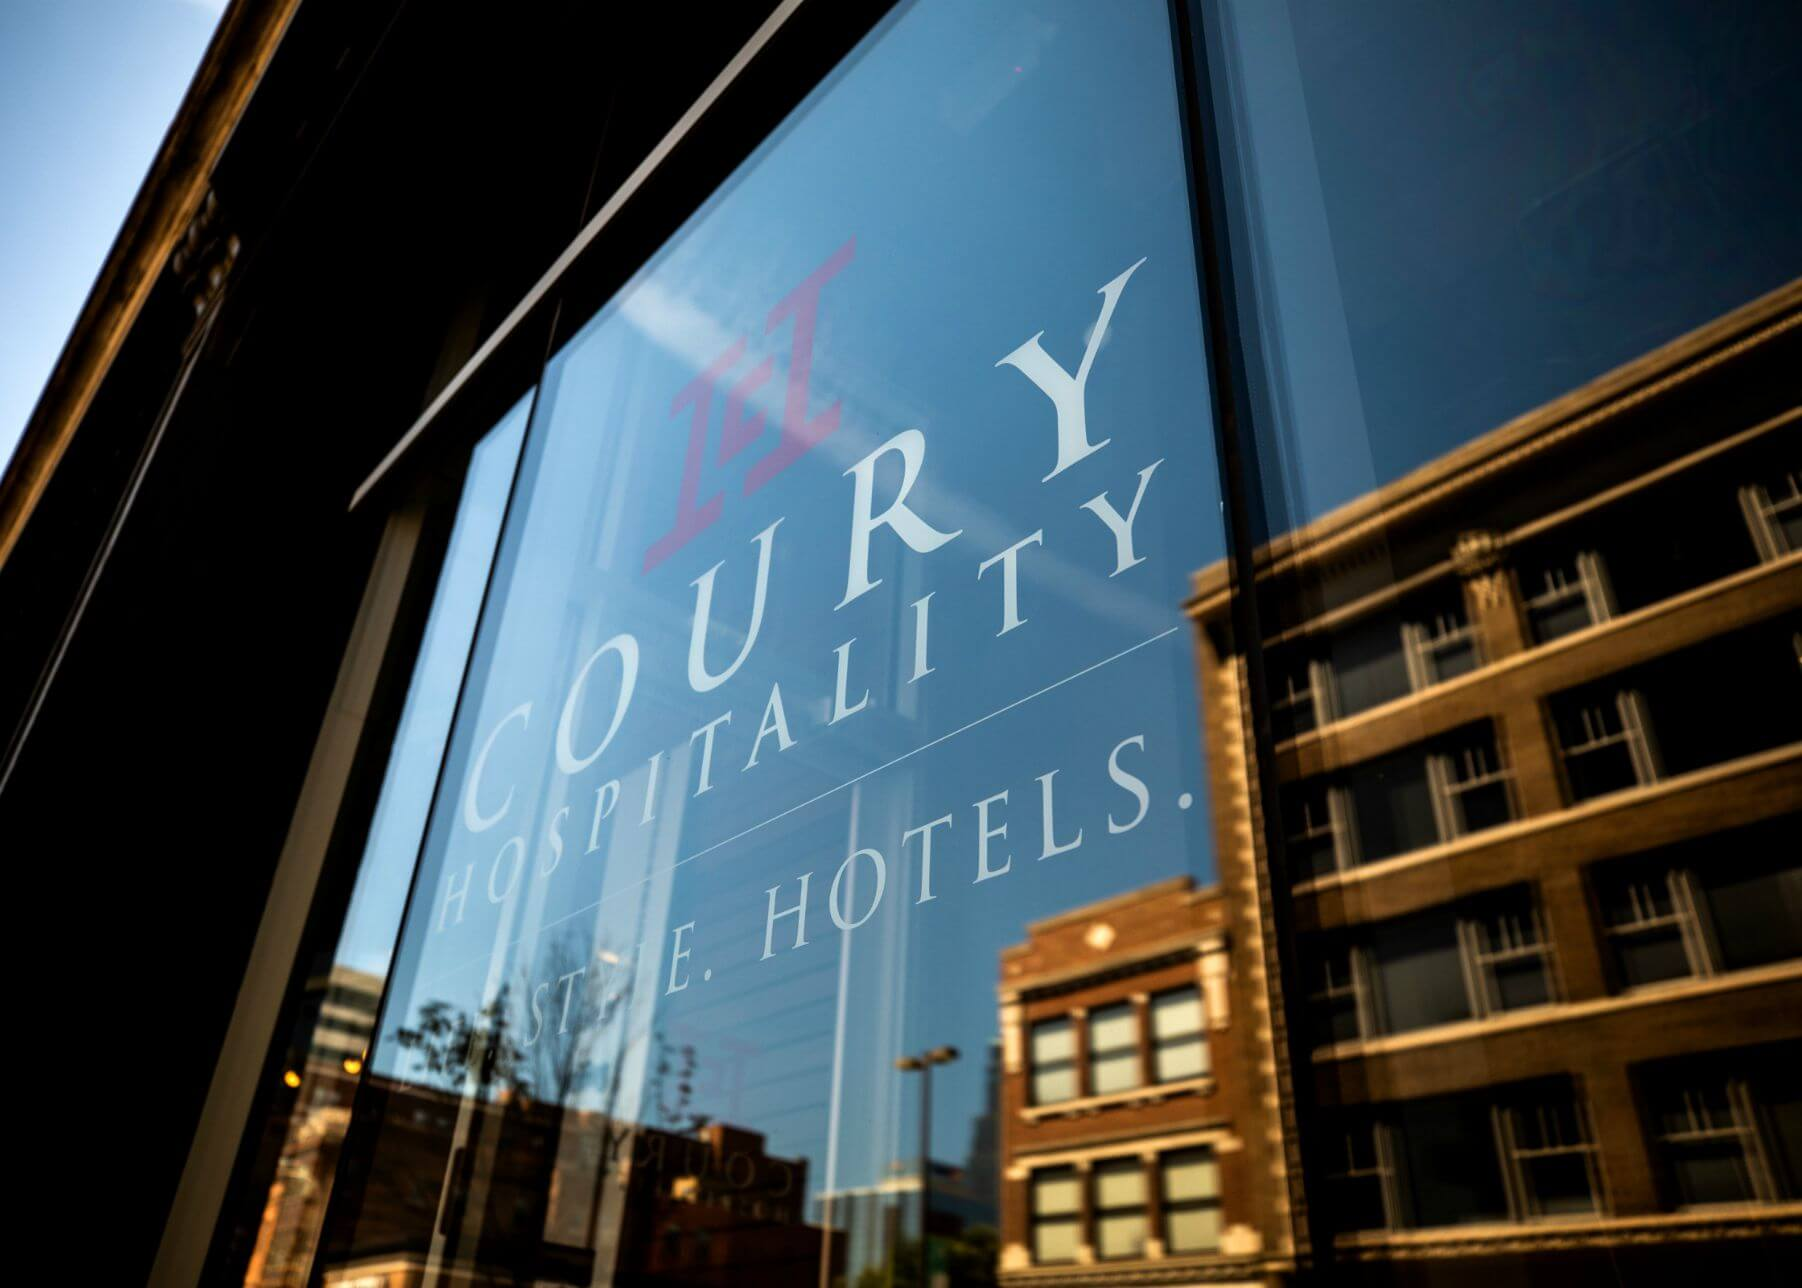 Coury Hospitality signage on office window in downtown Kansas City